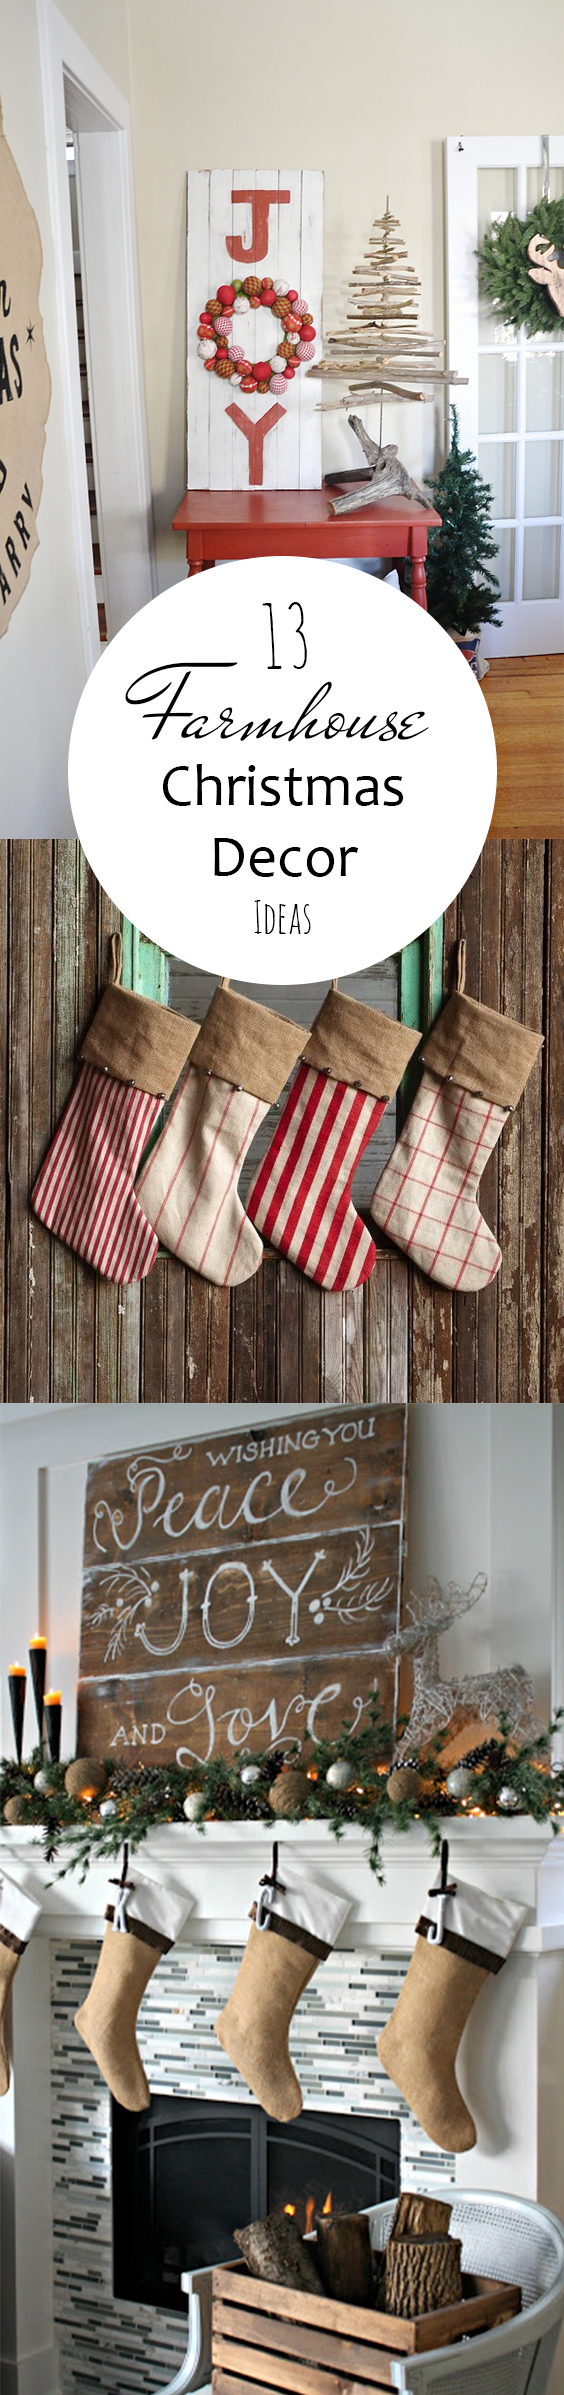 Farmhouse Christmas, Farmhouse Christmas Decor, Farmhouse Decor Ideas, Holiday Decor, Easy Rustic Christmas Decorations, Easy Farmhouse Decorations, Popular Pin, Easy Christmas Decor